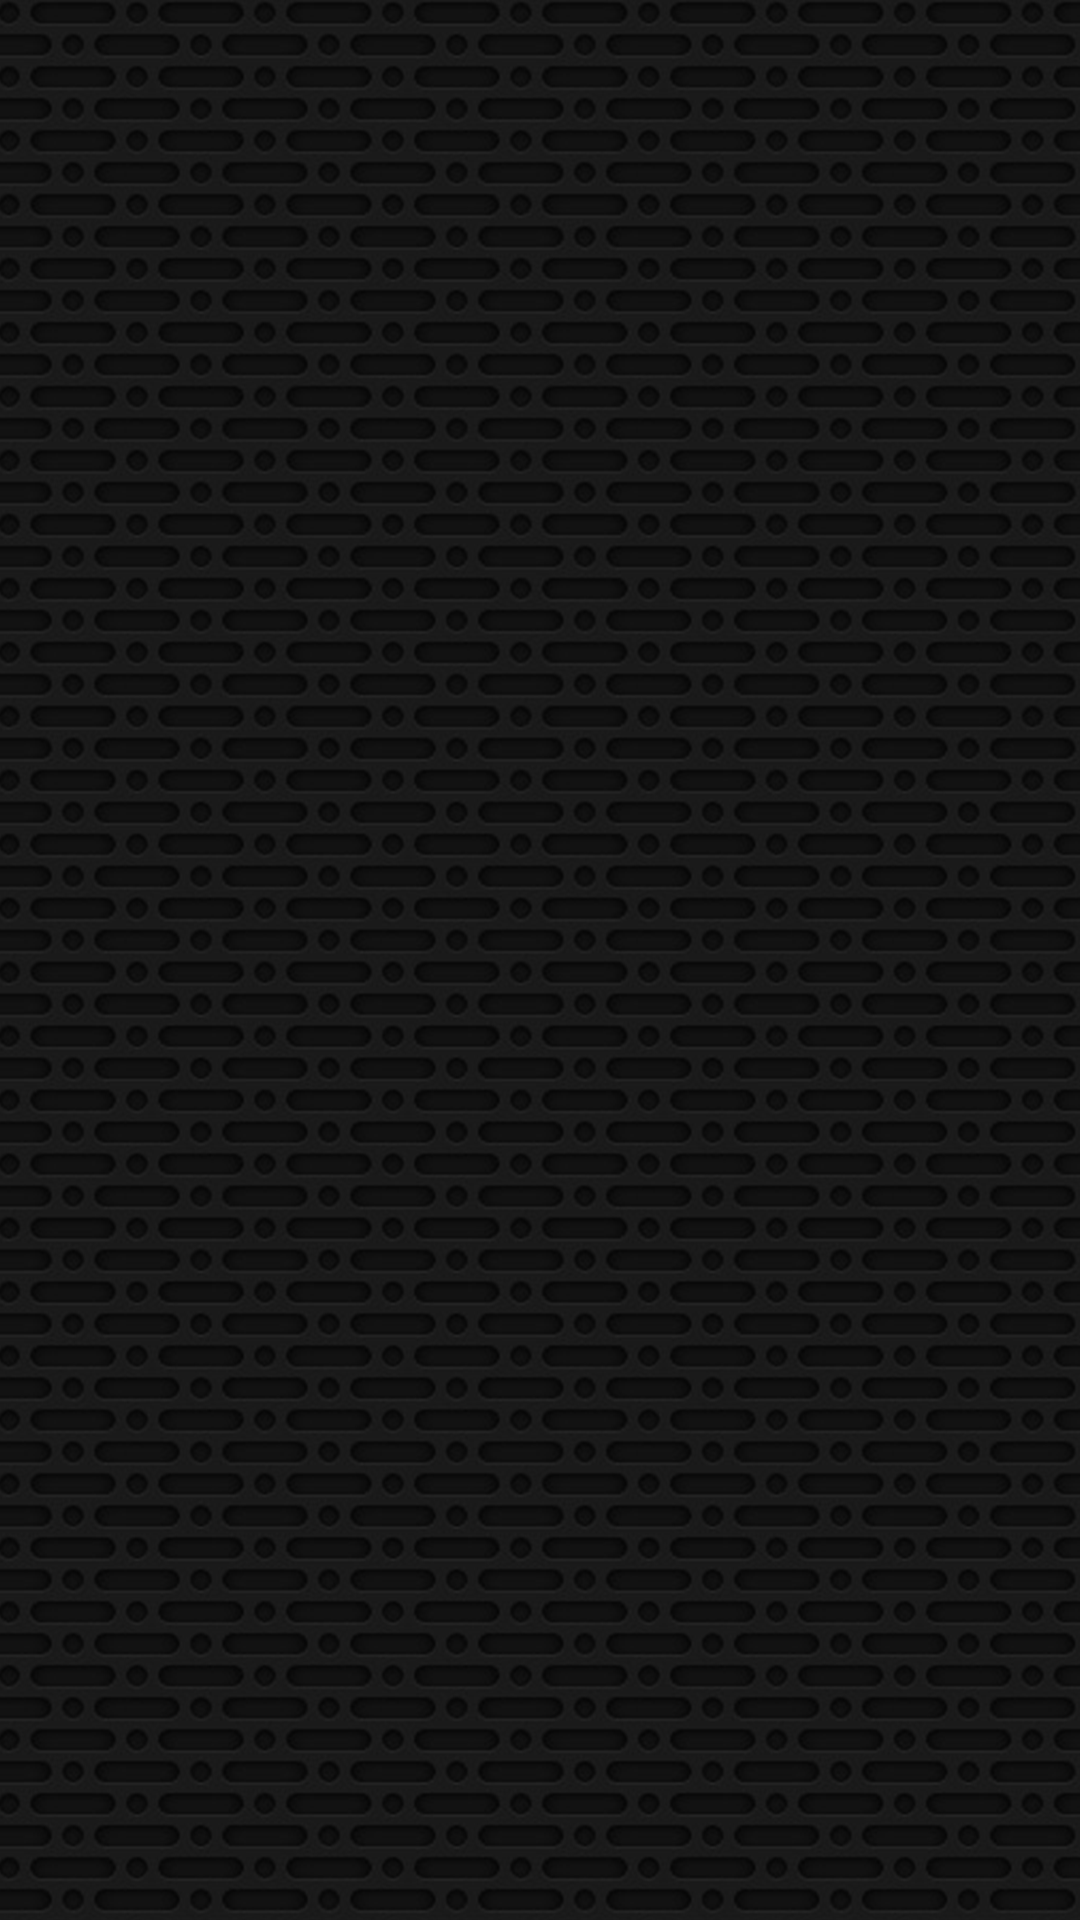 Dark Grid 1080 X 1920 FHD Wallpaper